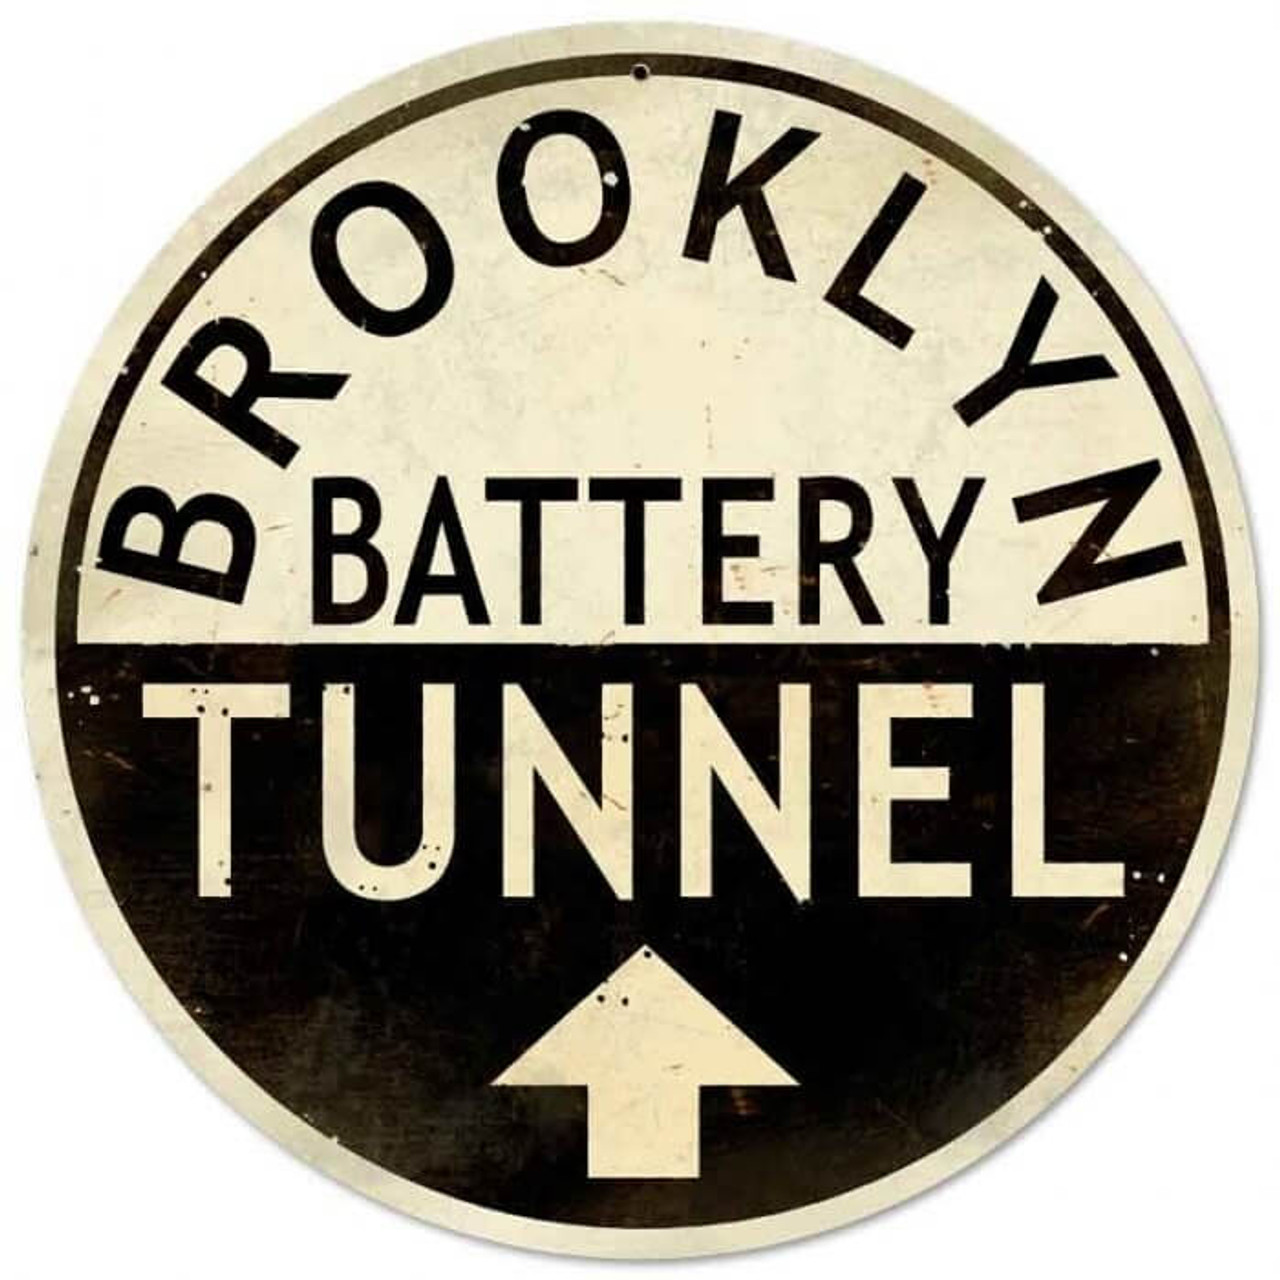 Retro Brooklyn Tunnel  Round Metal Sign 28 x 28 Inches